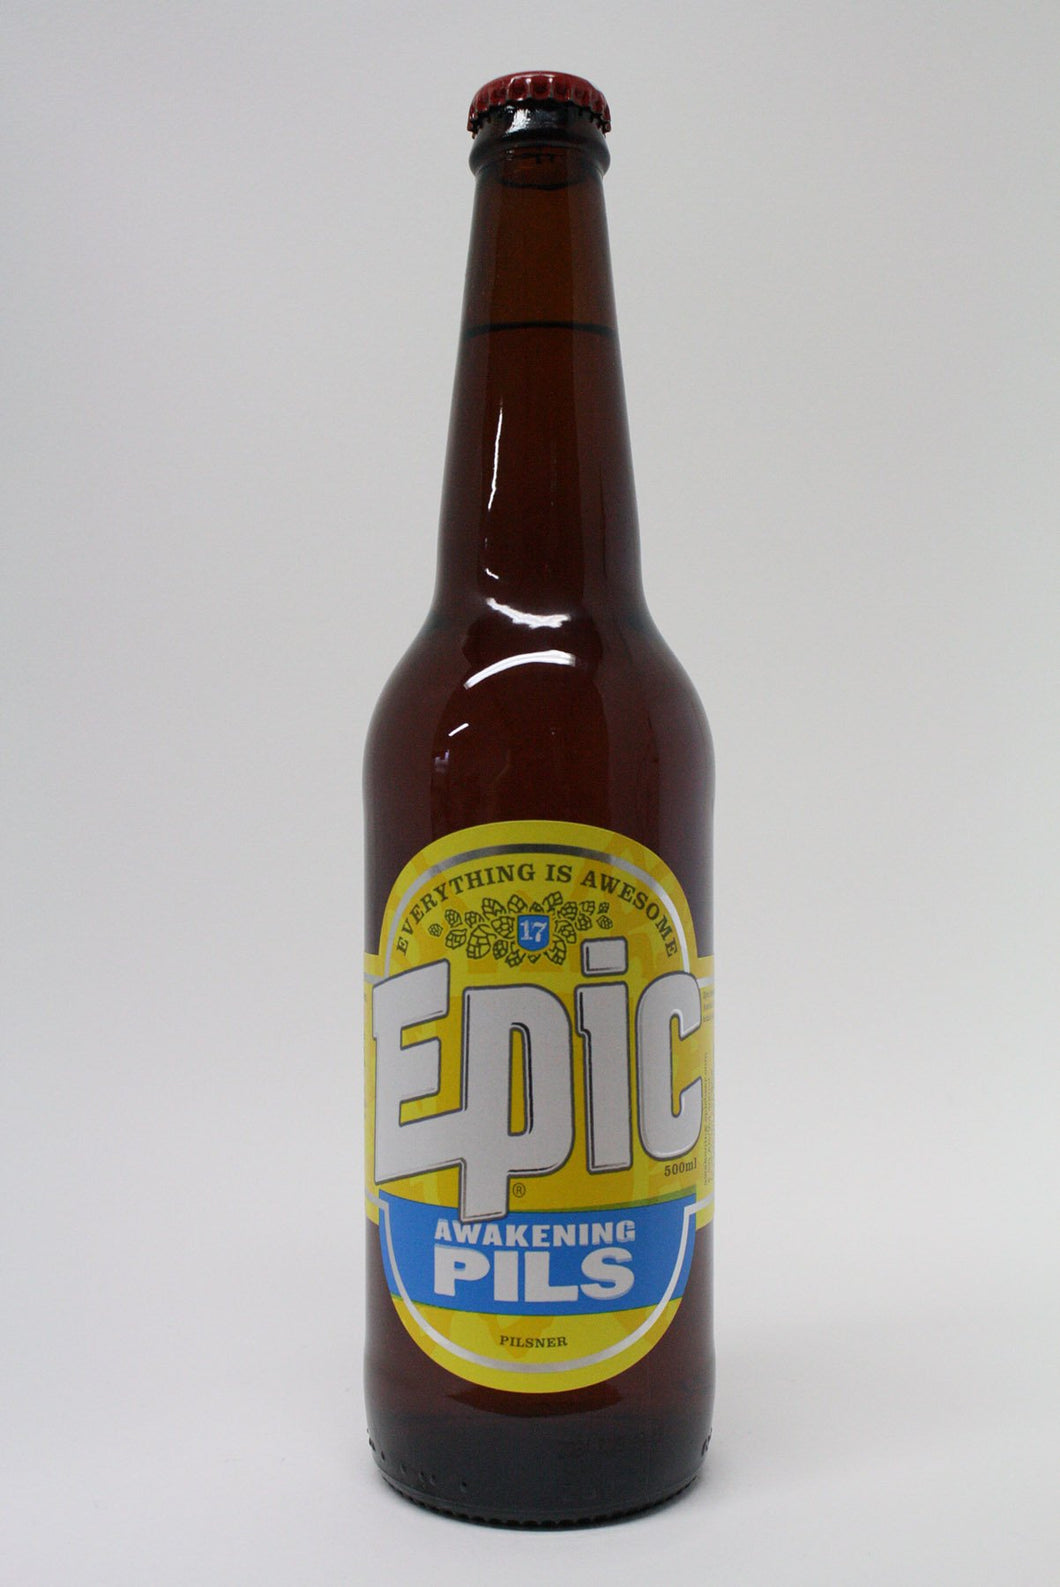 EPIC - Awakening Pilsner 500ml